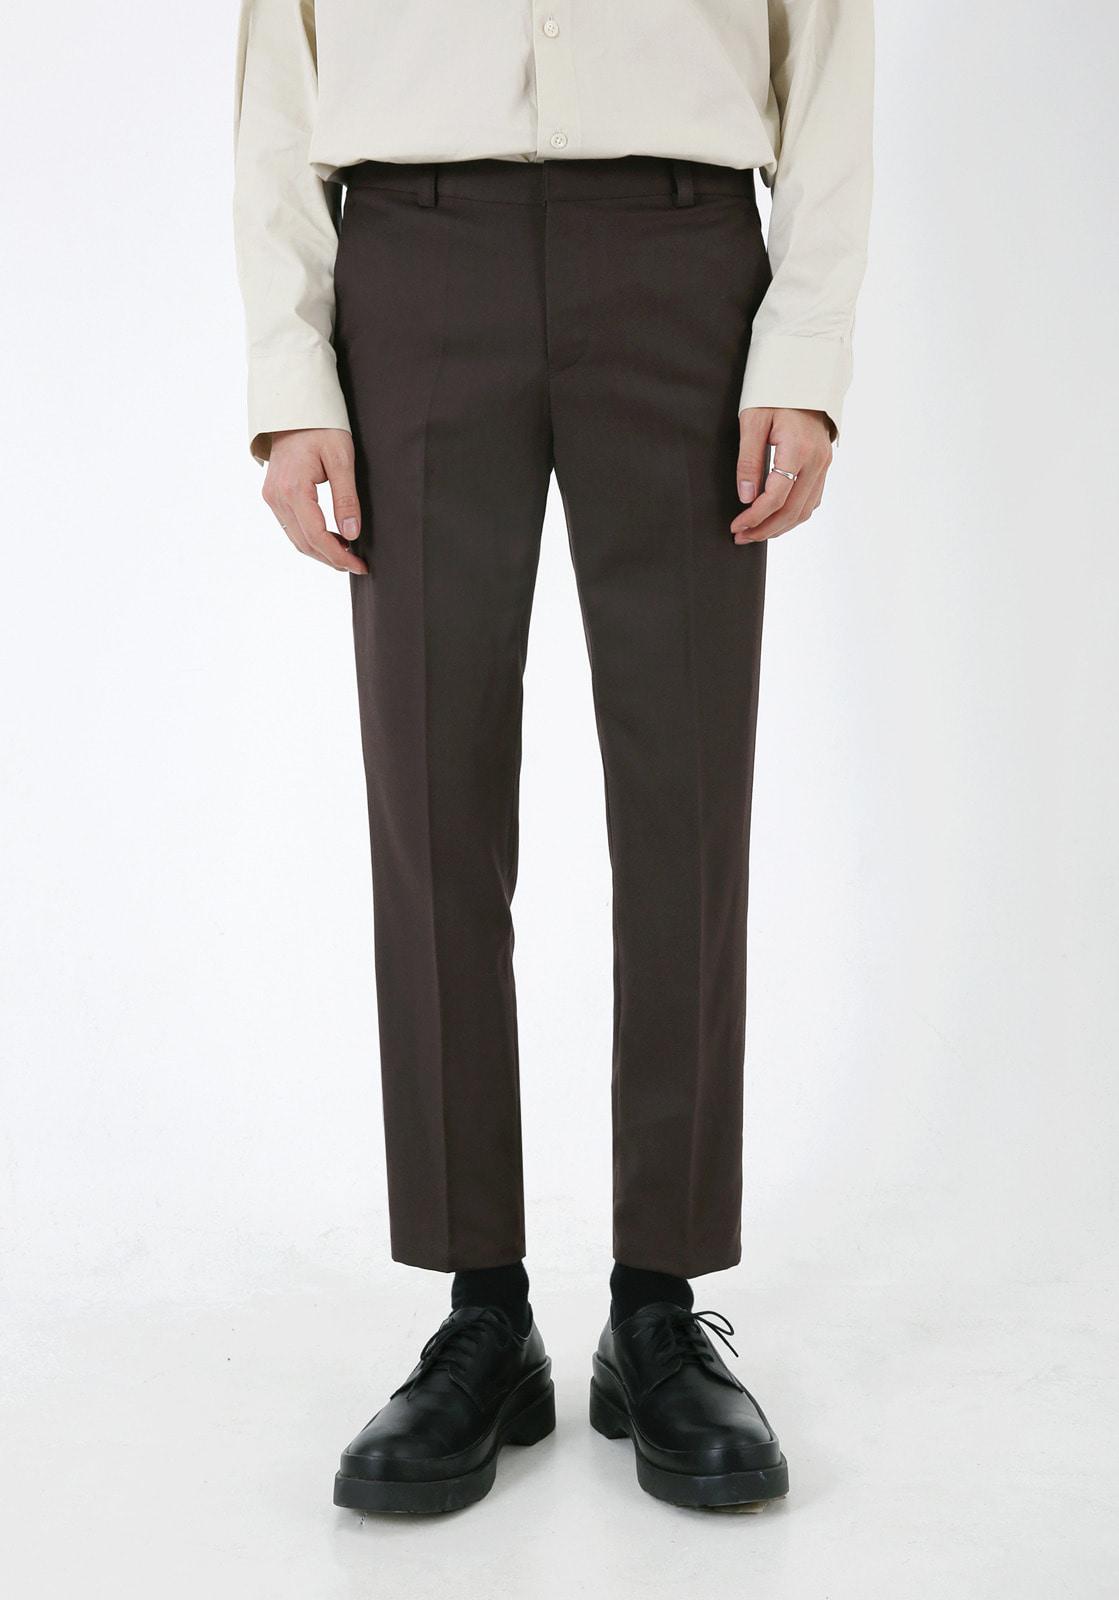 V305 RHODES BANDDING CROP SLACKS  BROWN